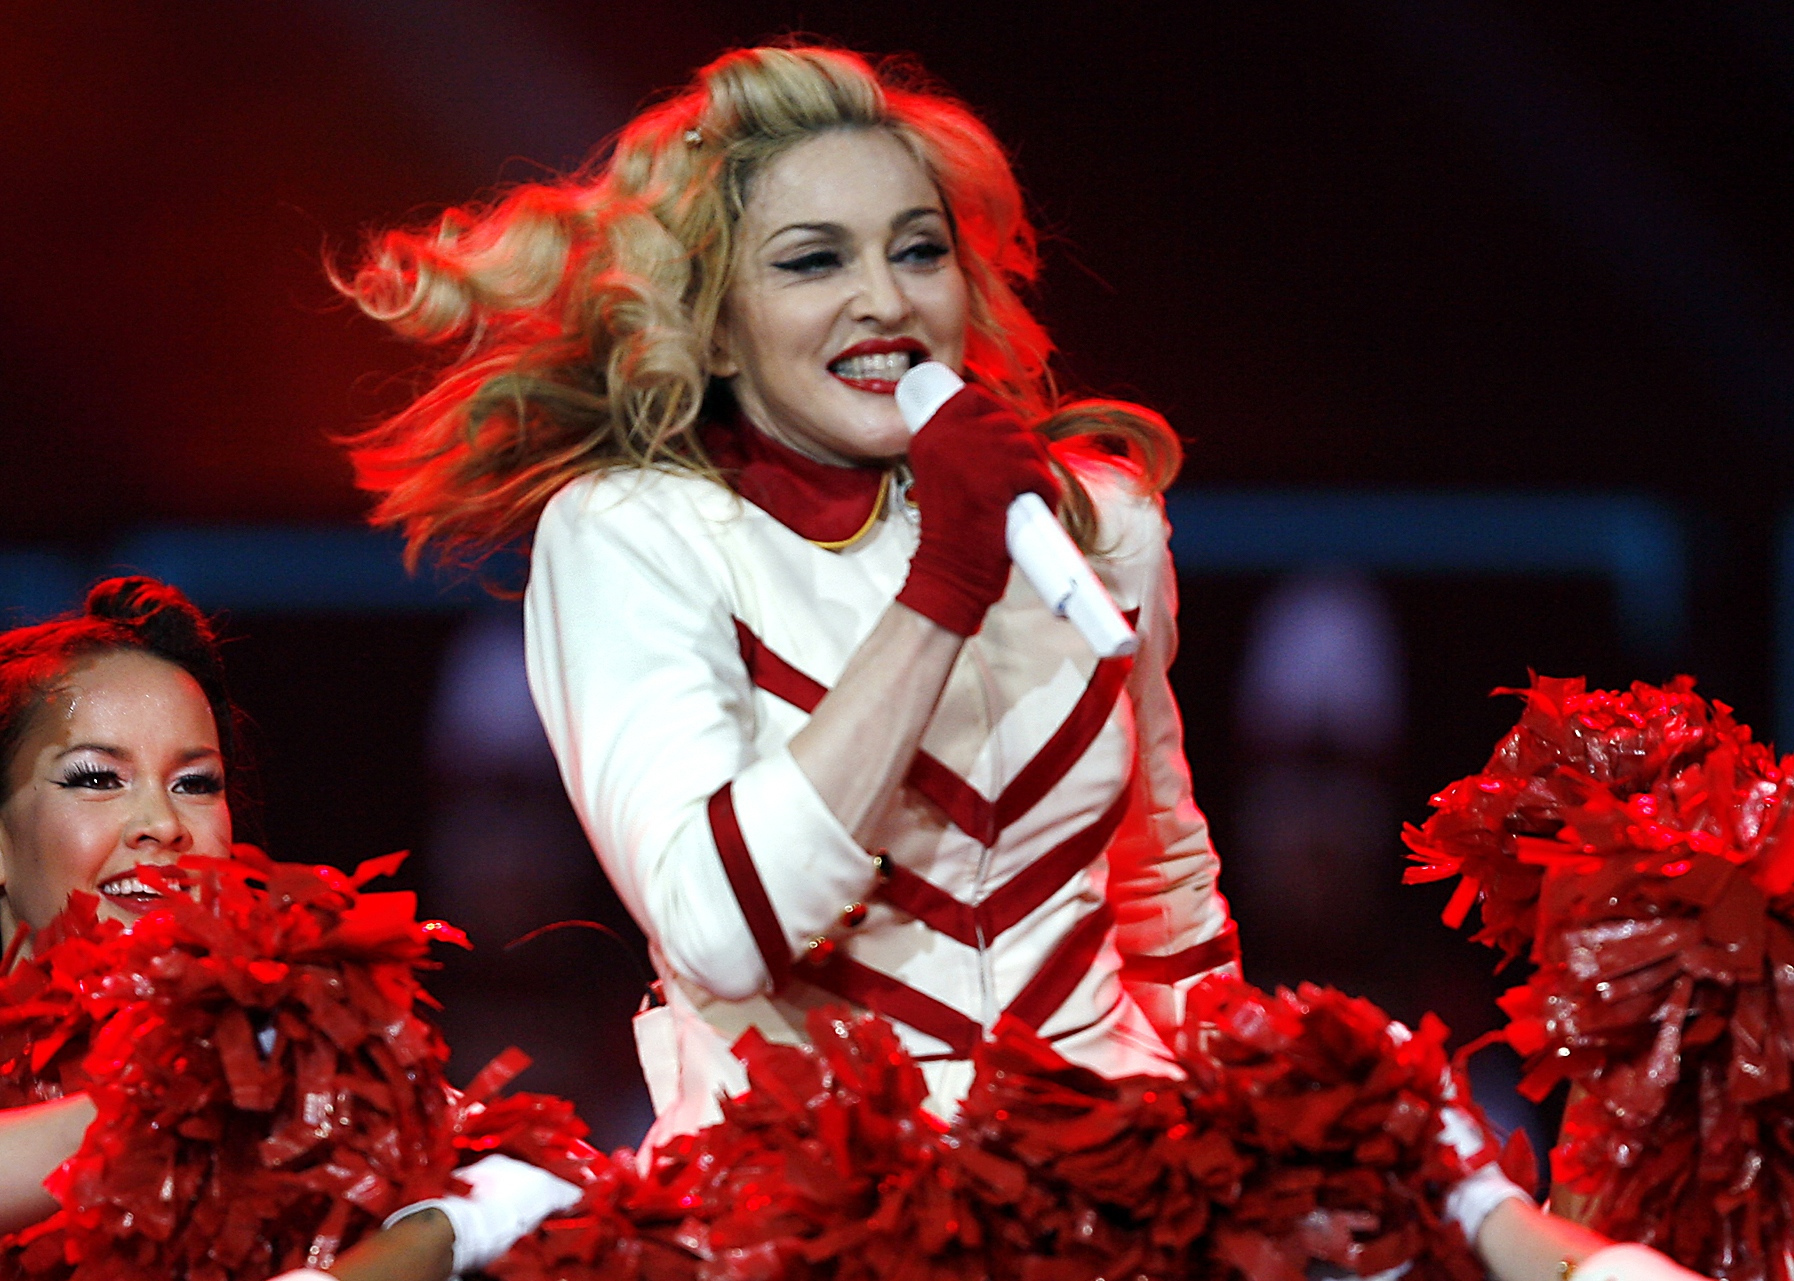 FILE - In this Nov. 8, 2012, file photo, Madonna performs at the Joe Louis Arena in Detroit. Madonna, who was  inspired  during a recent visit to Detroit, is donating money toward the construction of a new youth boxing gym and buying iPods, iPads and other supplies for students at a charter school in her hometown, according to a news release issued by the music icon's publicist Monday, June 30, 2014. The statement said Madonna's donations to three Detroit organizations represent  the first phase of a long-term commitment to  the city. (Photo by Gary Malerba/Invision/AP, file)